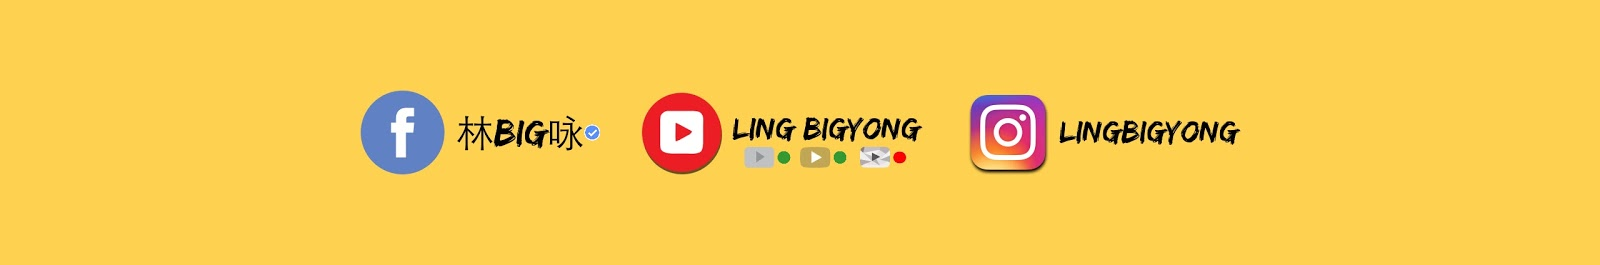 Ling BigYong YouTube Channel